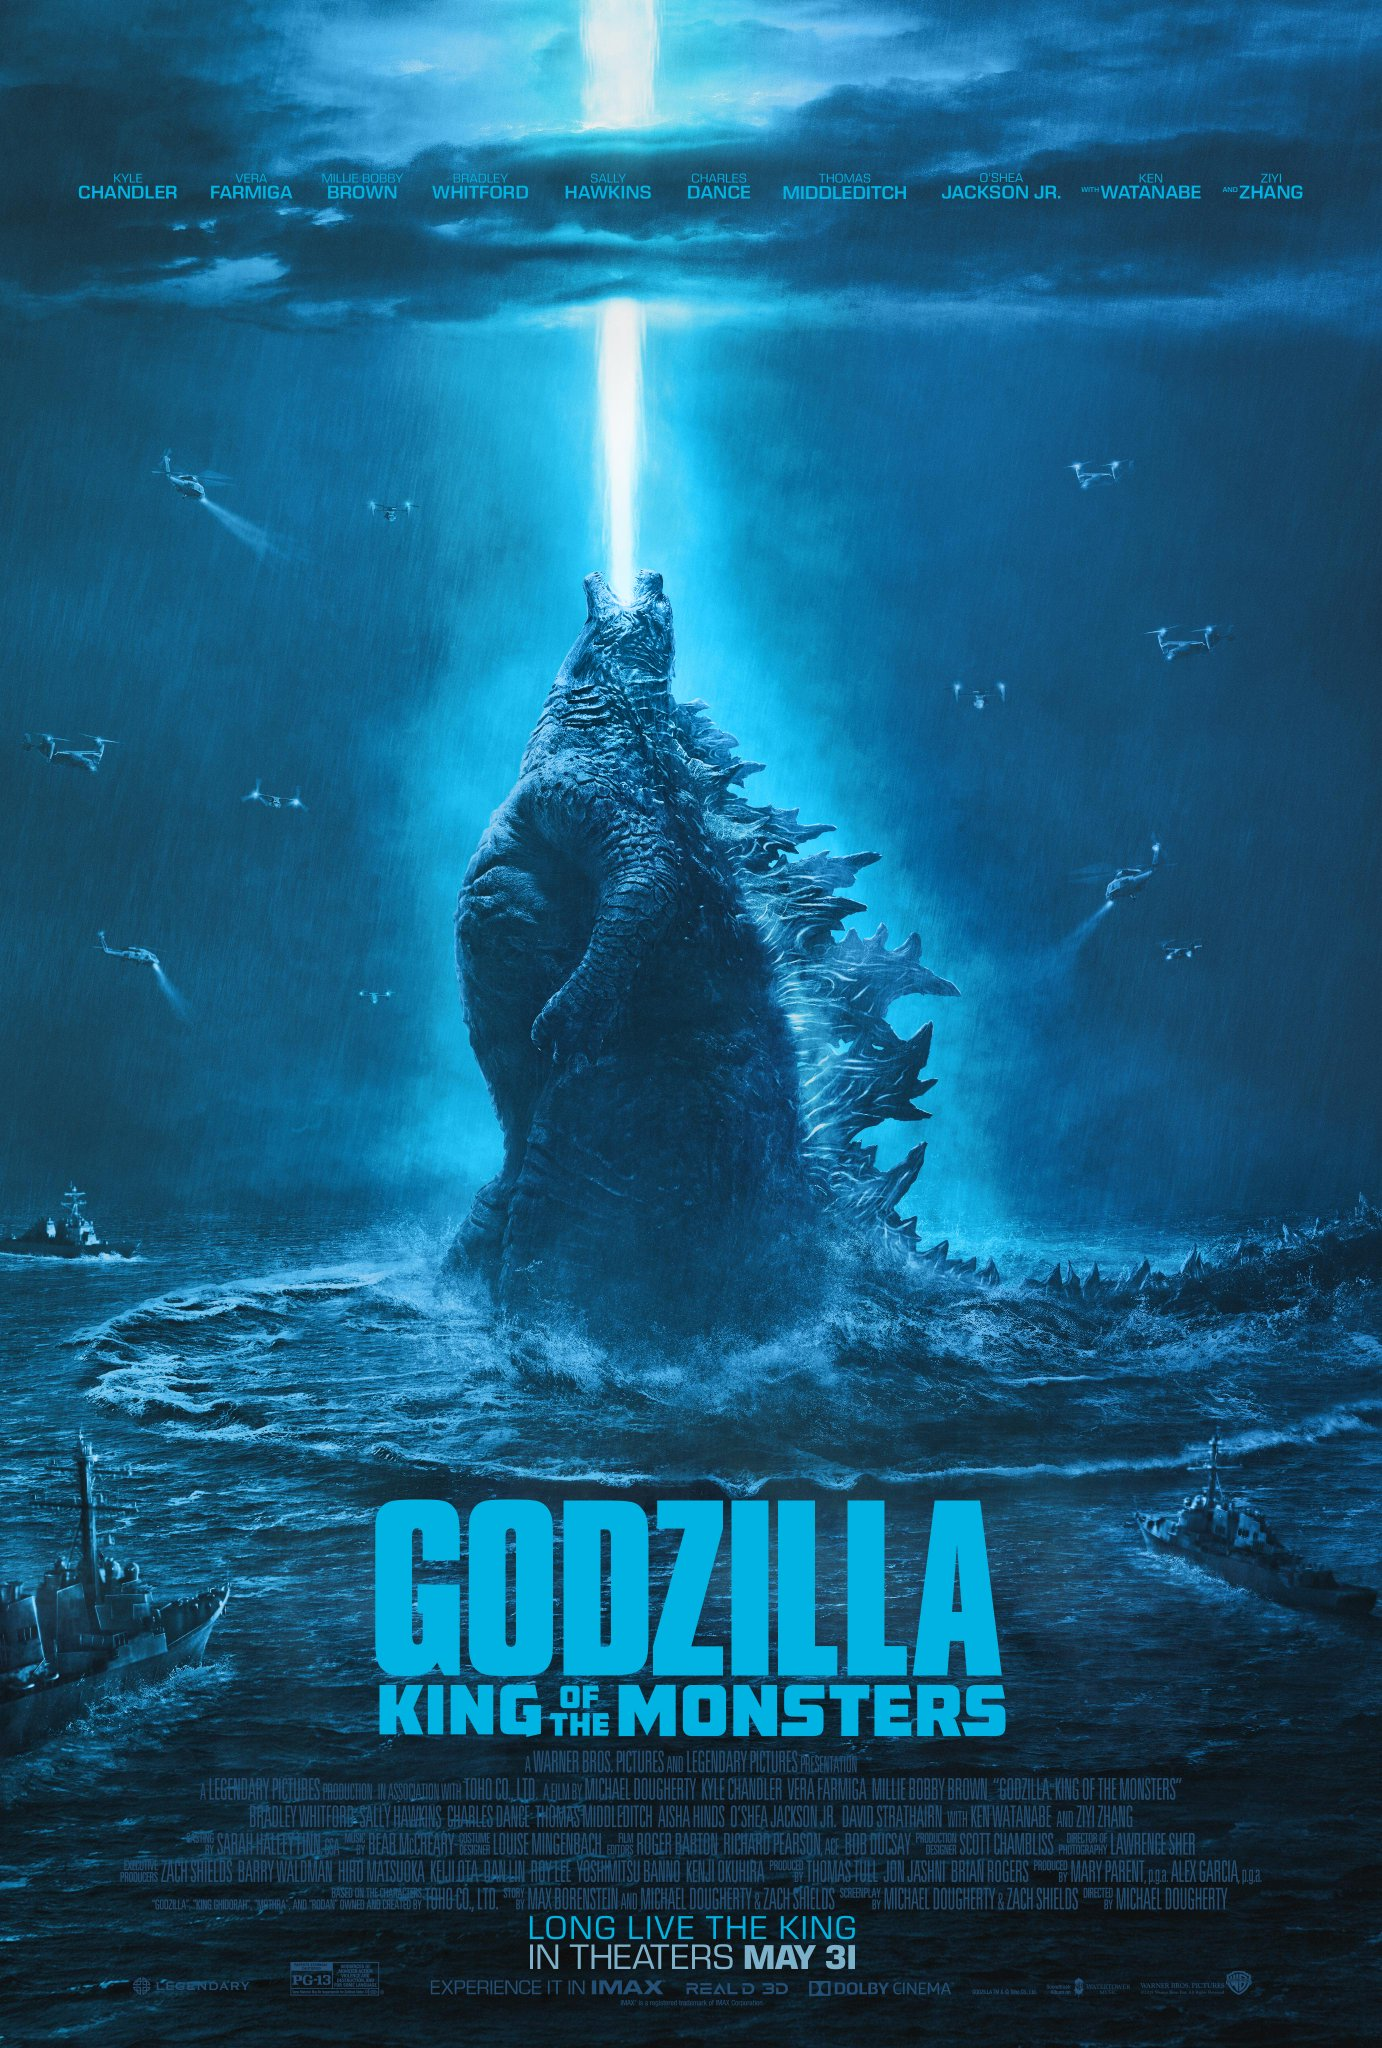 Latest 'Godzilla: King of the Monsters' Poster Showcases an Epic Sight to Behold